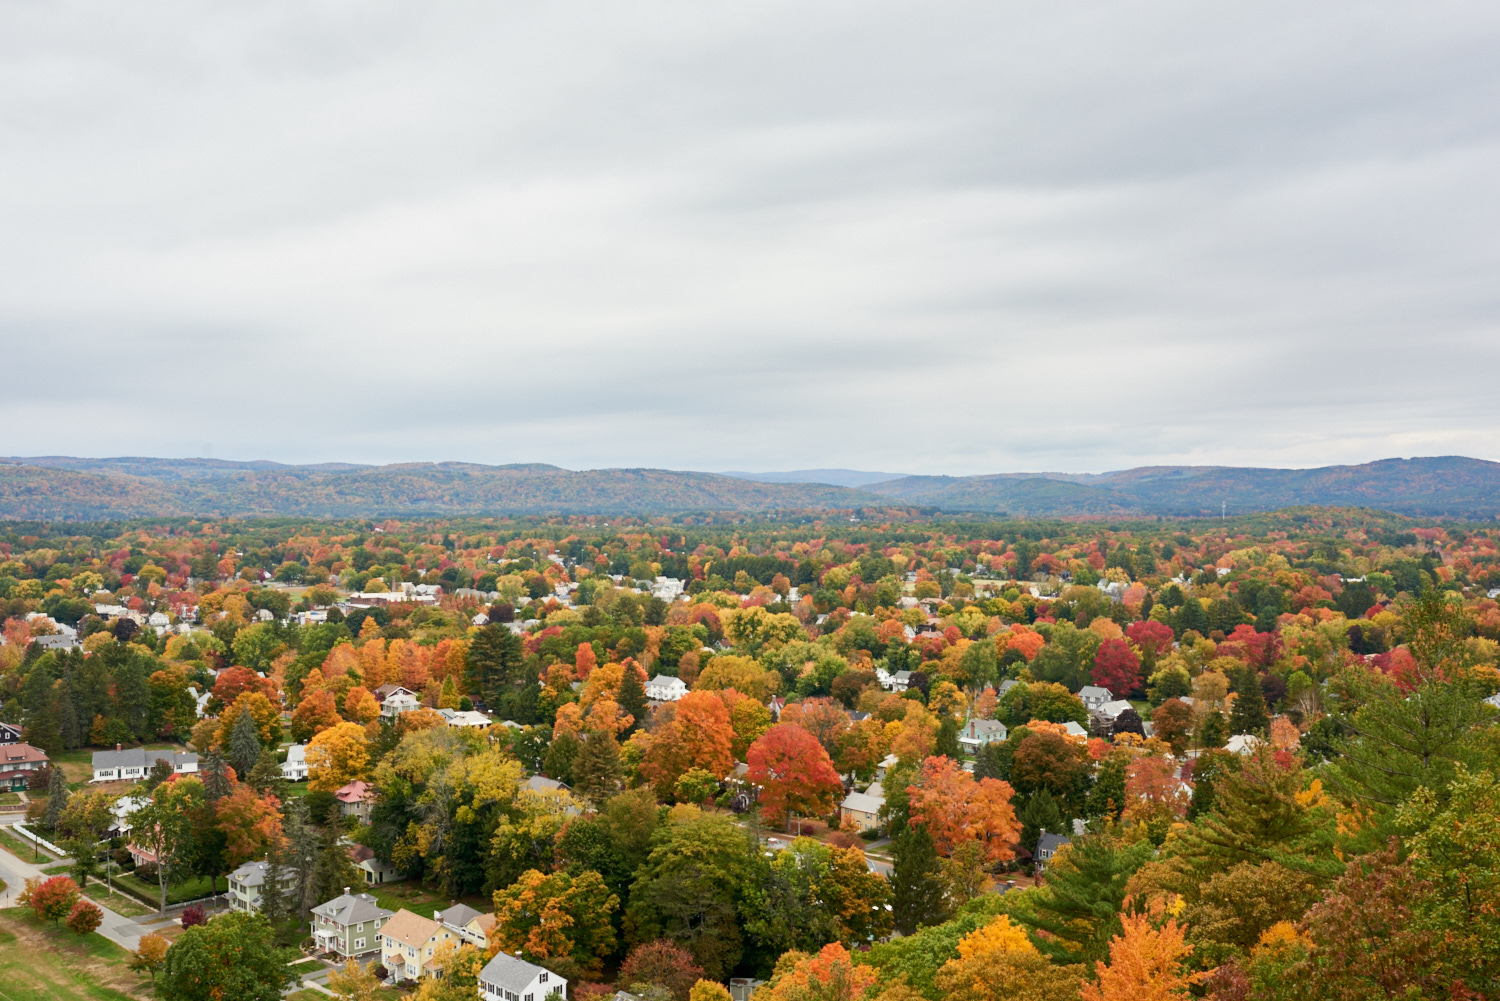 Fall colors over Greenfield, MA. © 2016 harlan erskine.